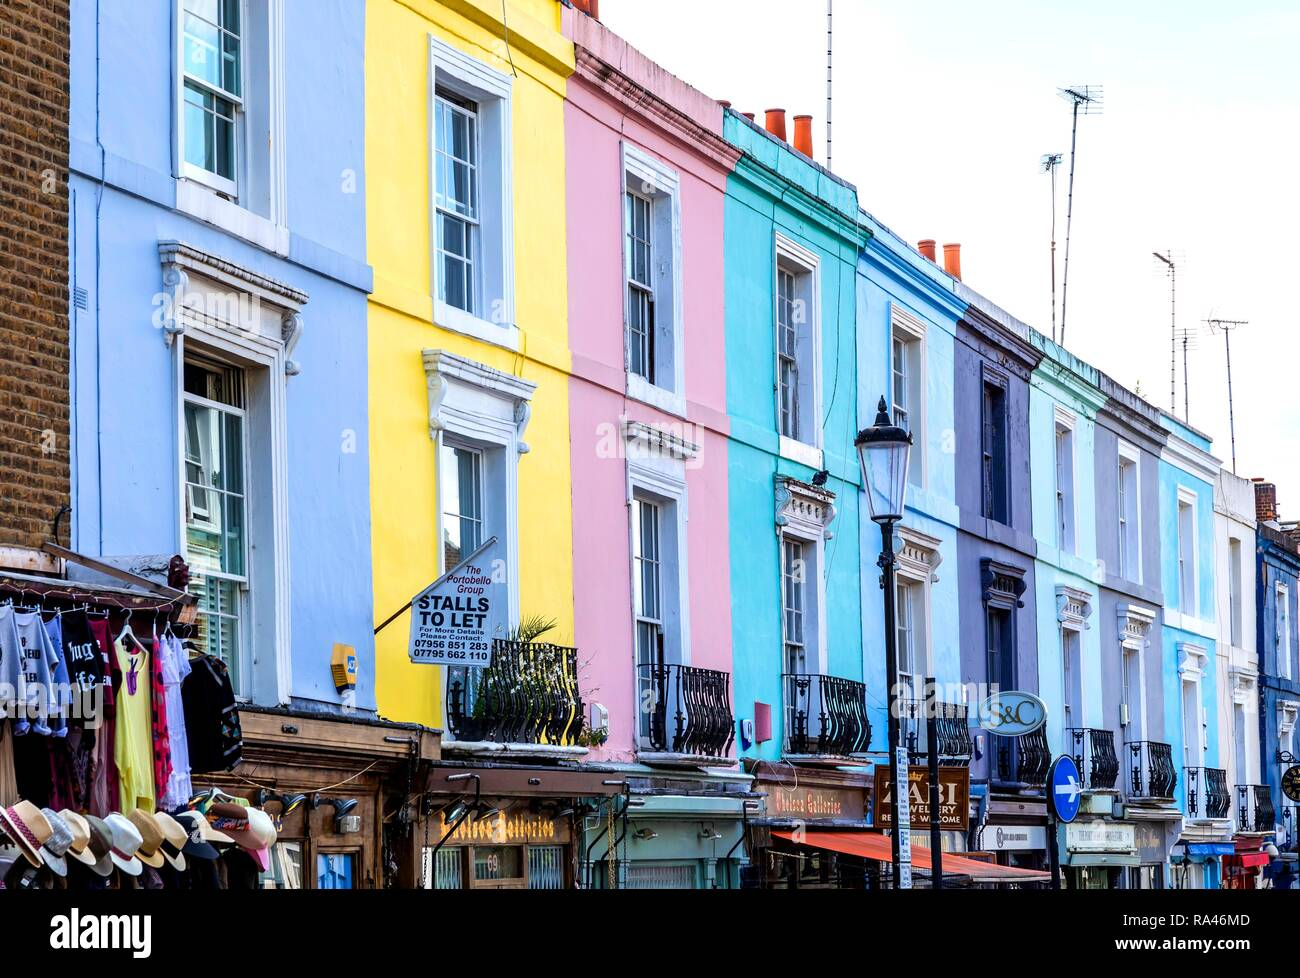 Colorful row of houses on Portobello Road, Notting Hill, London, Great Britain Stock Photo